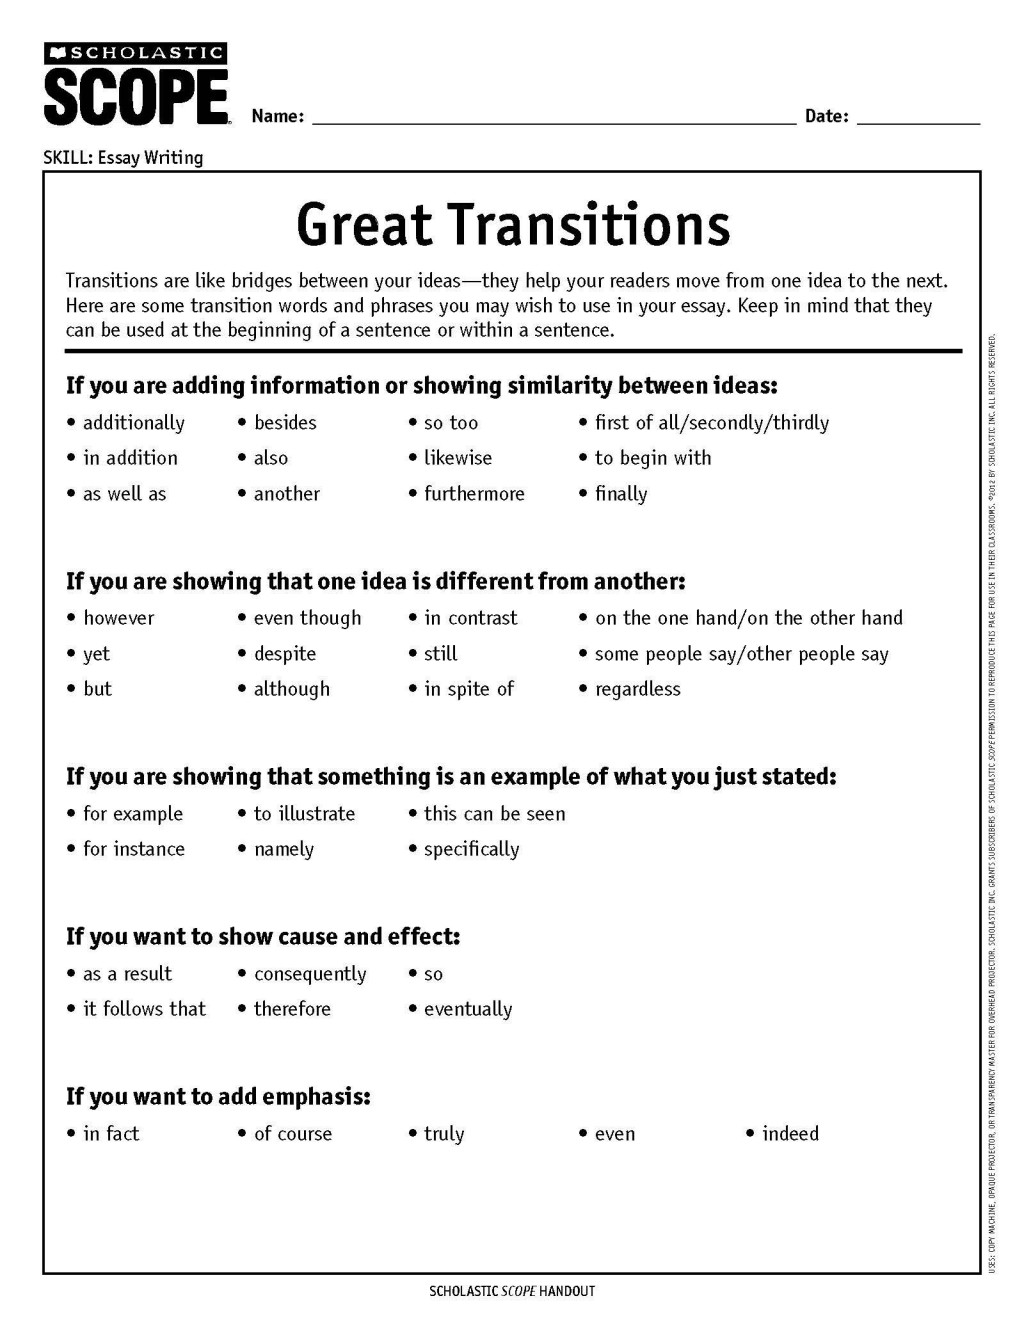 019 Essay Example Transitions How To Choose The Perfect Transition Word Or Phrase Writing Words For An List Of Transitional Essays Pdf Archaicawful Conclusion In Spanish Large